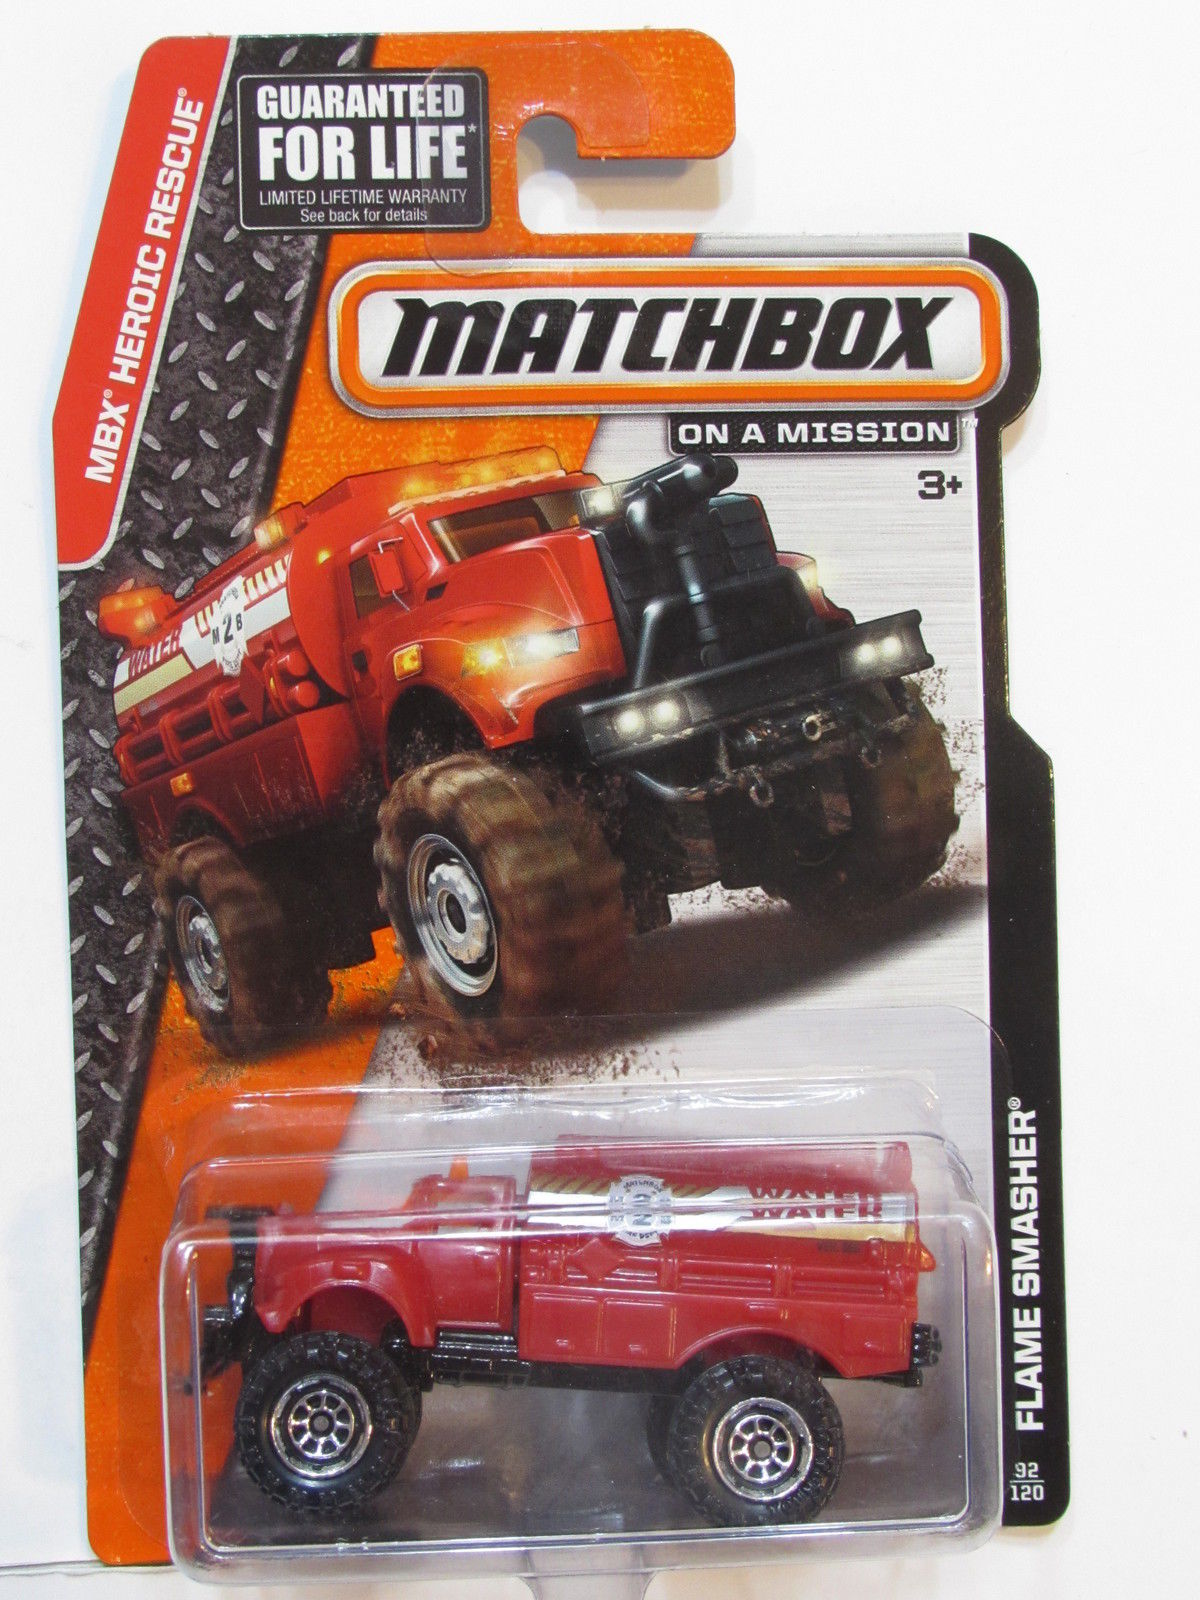 MATCHBOX 2013 ON A MISSION FLAME SMASHER RED